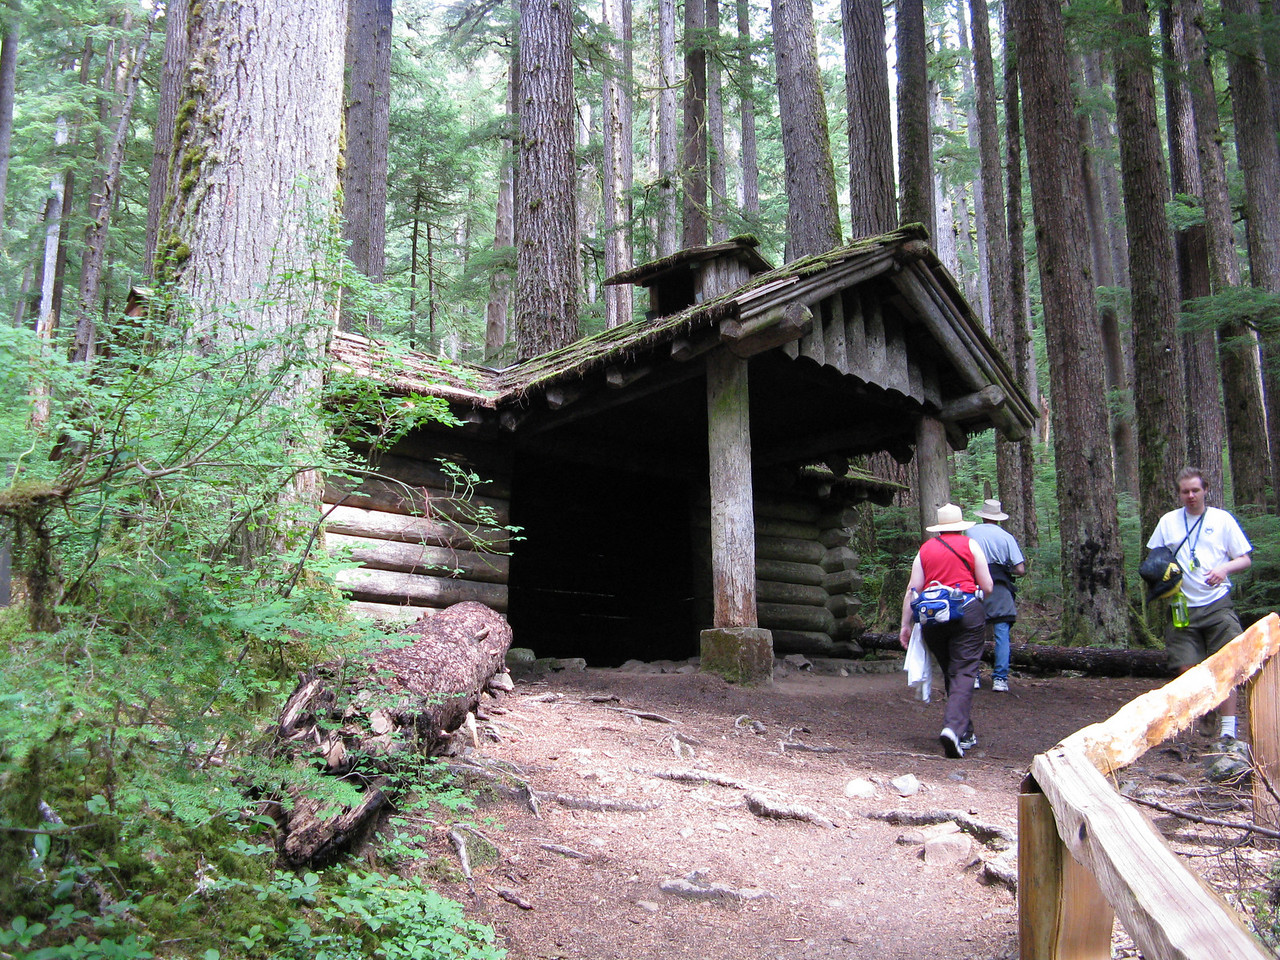 This is a back country shelter next to the trail not far from Sol Duc Falls.